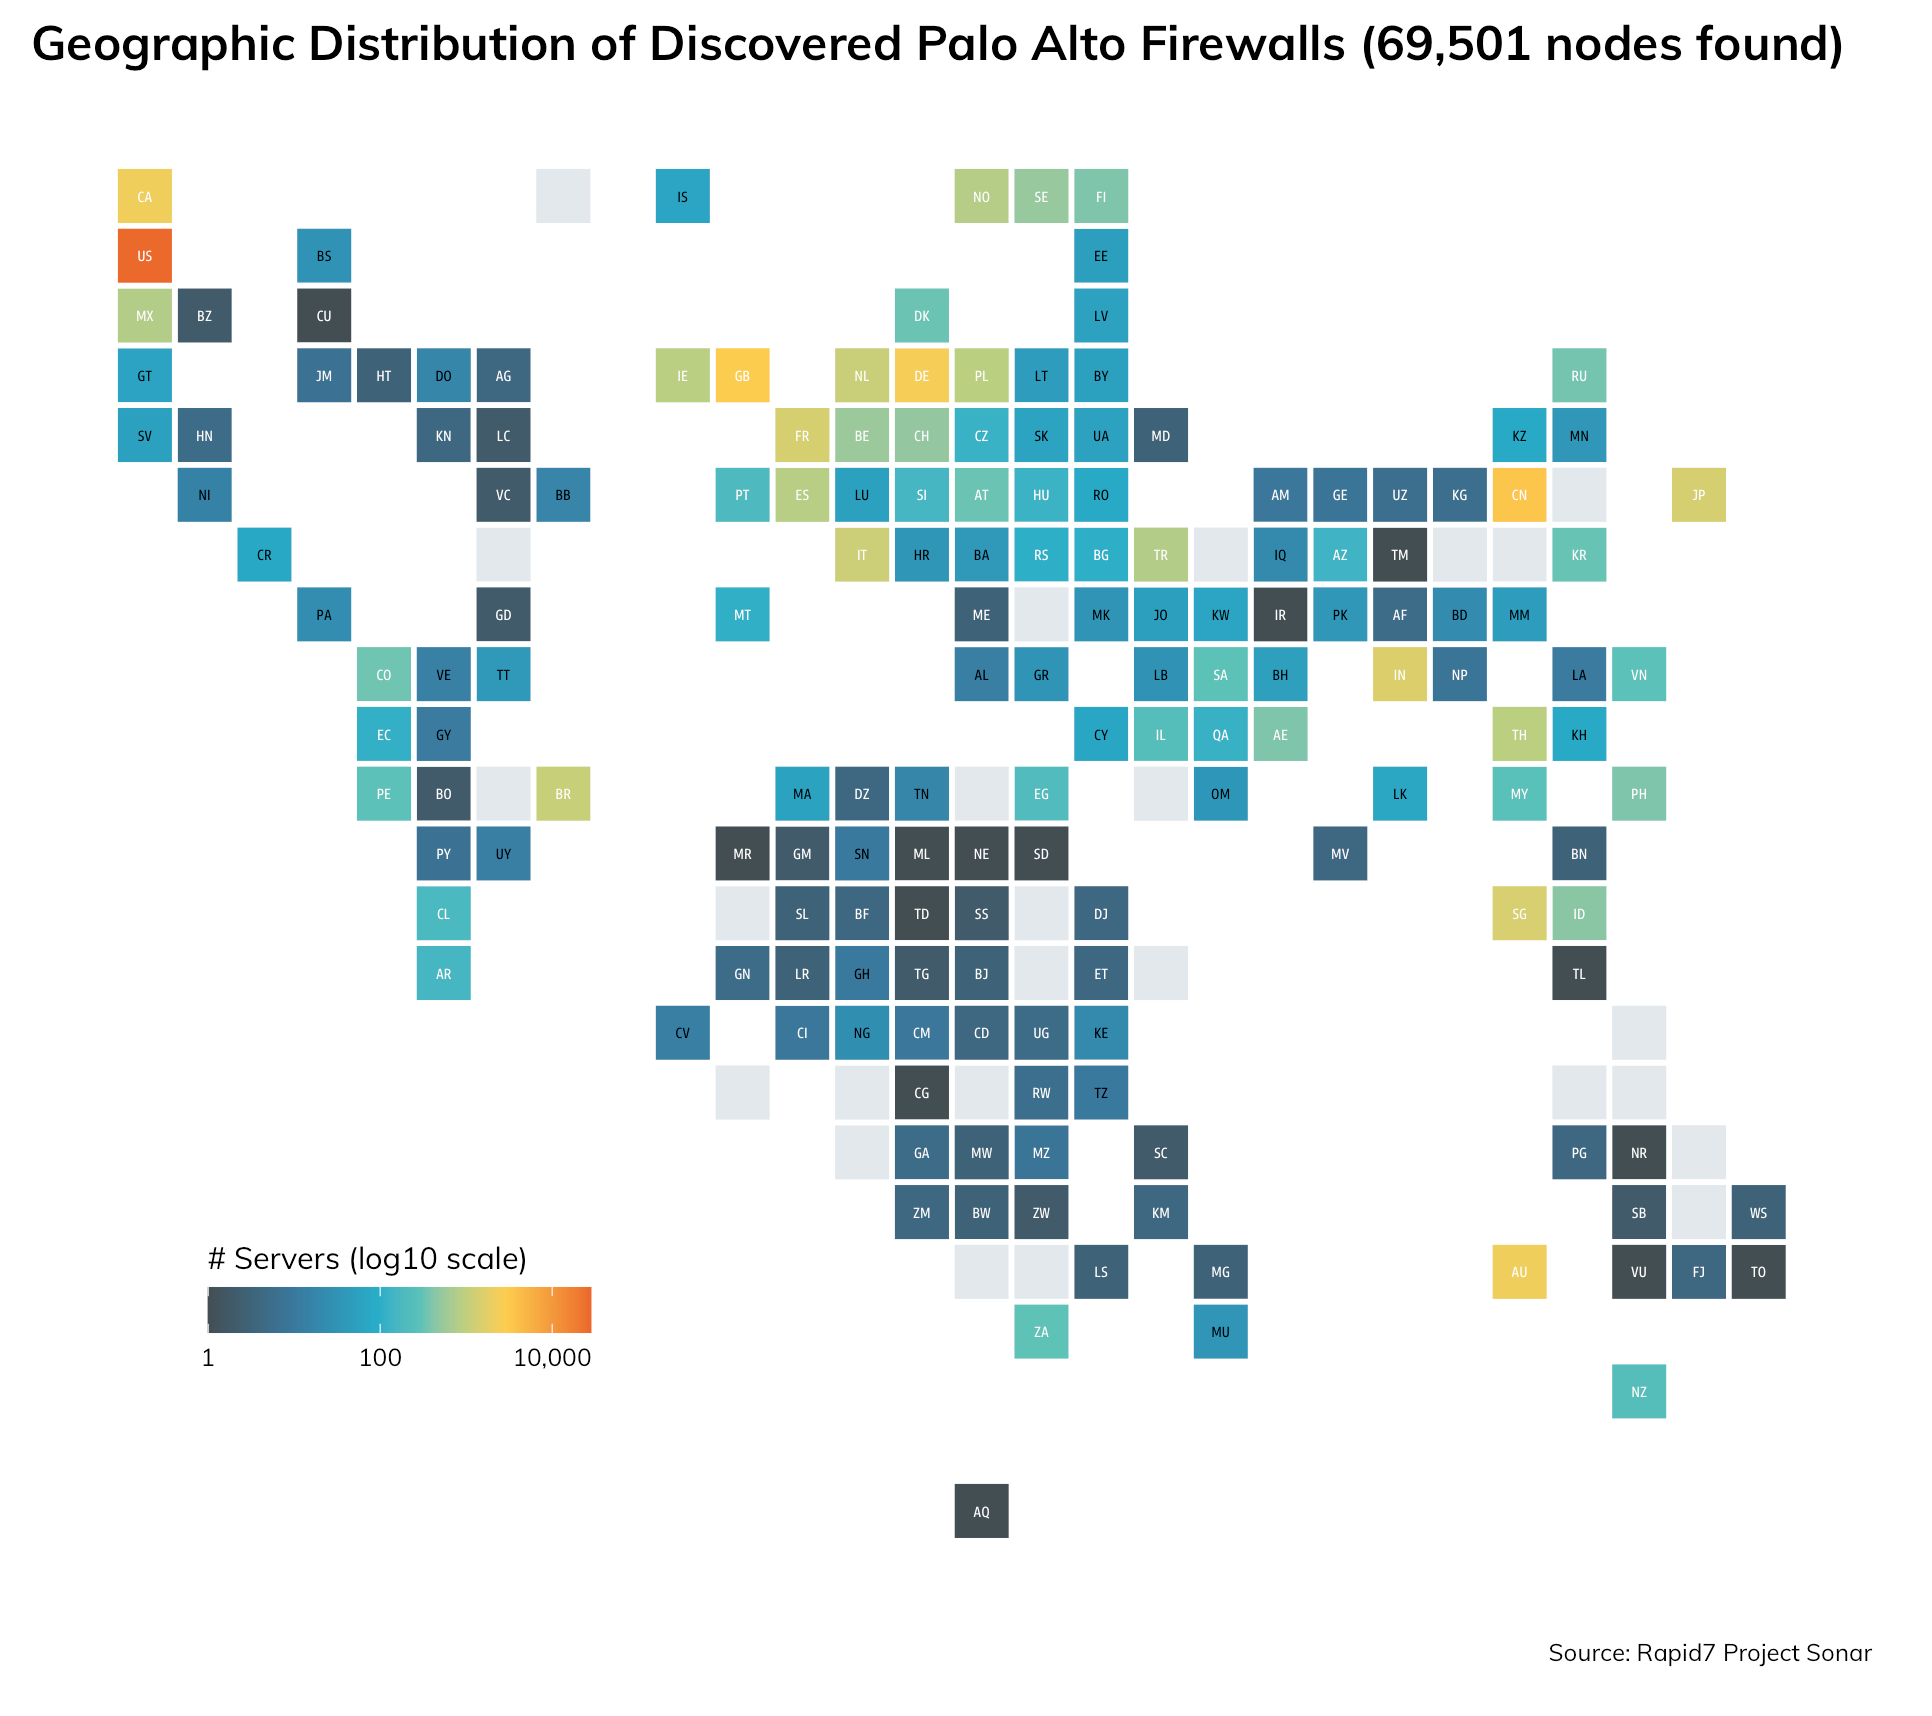 Geographic distribution of discovered Palo Alto Firewalls that could be exposed to this authentication bypass vulnerability (CVE-2020-2021)